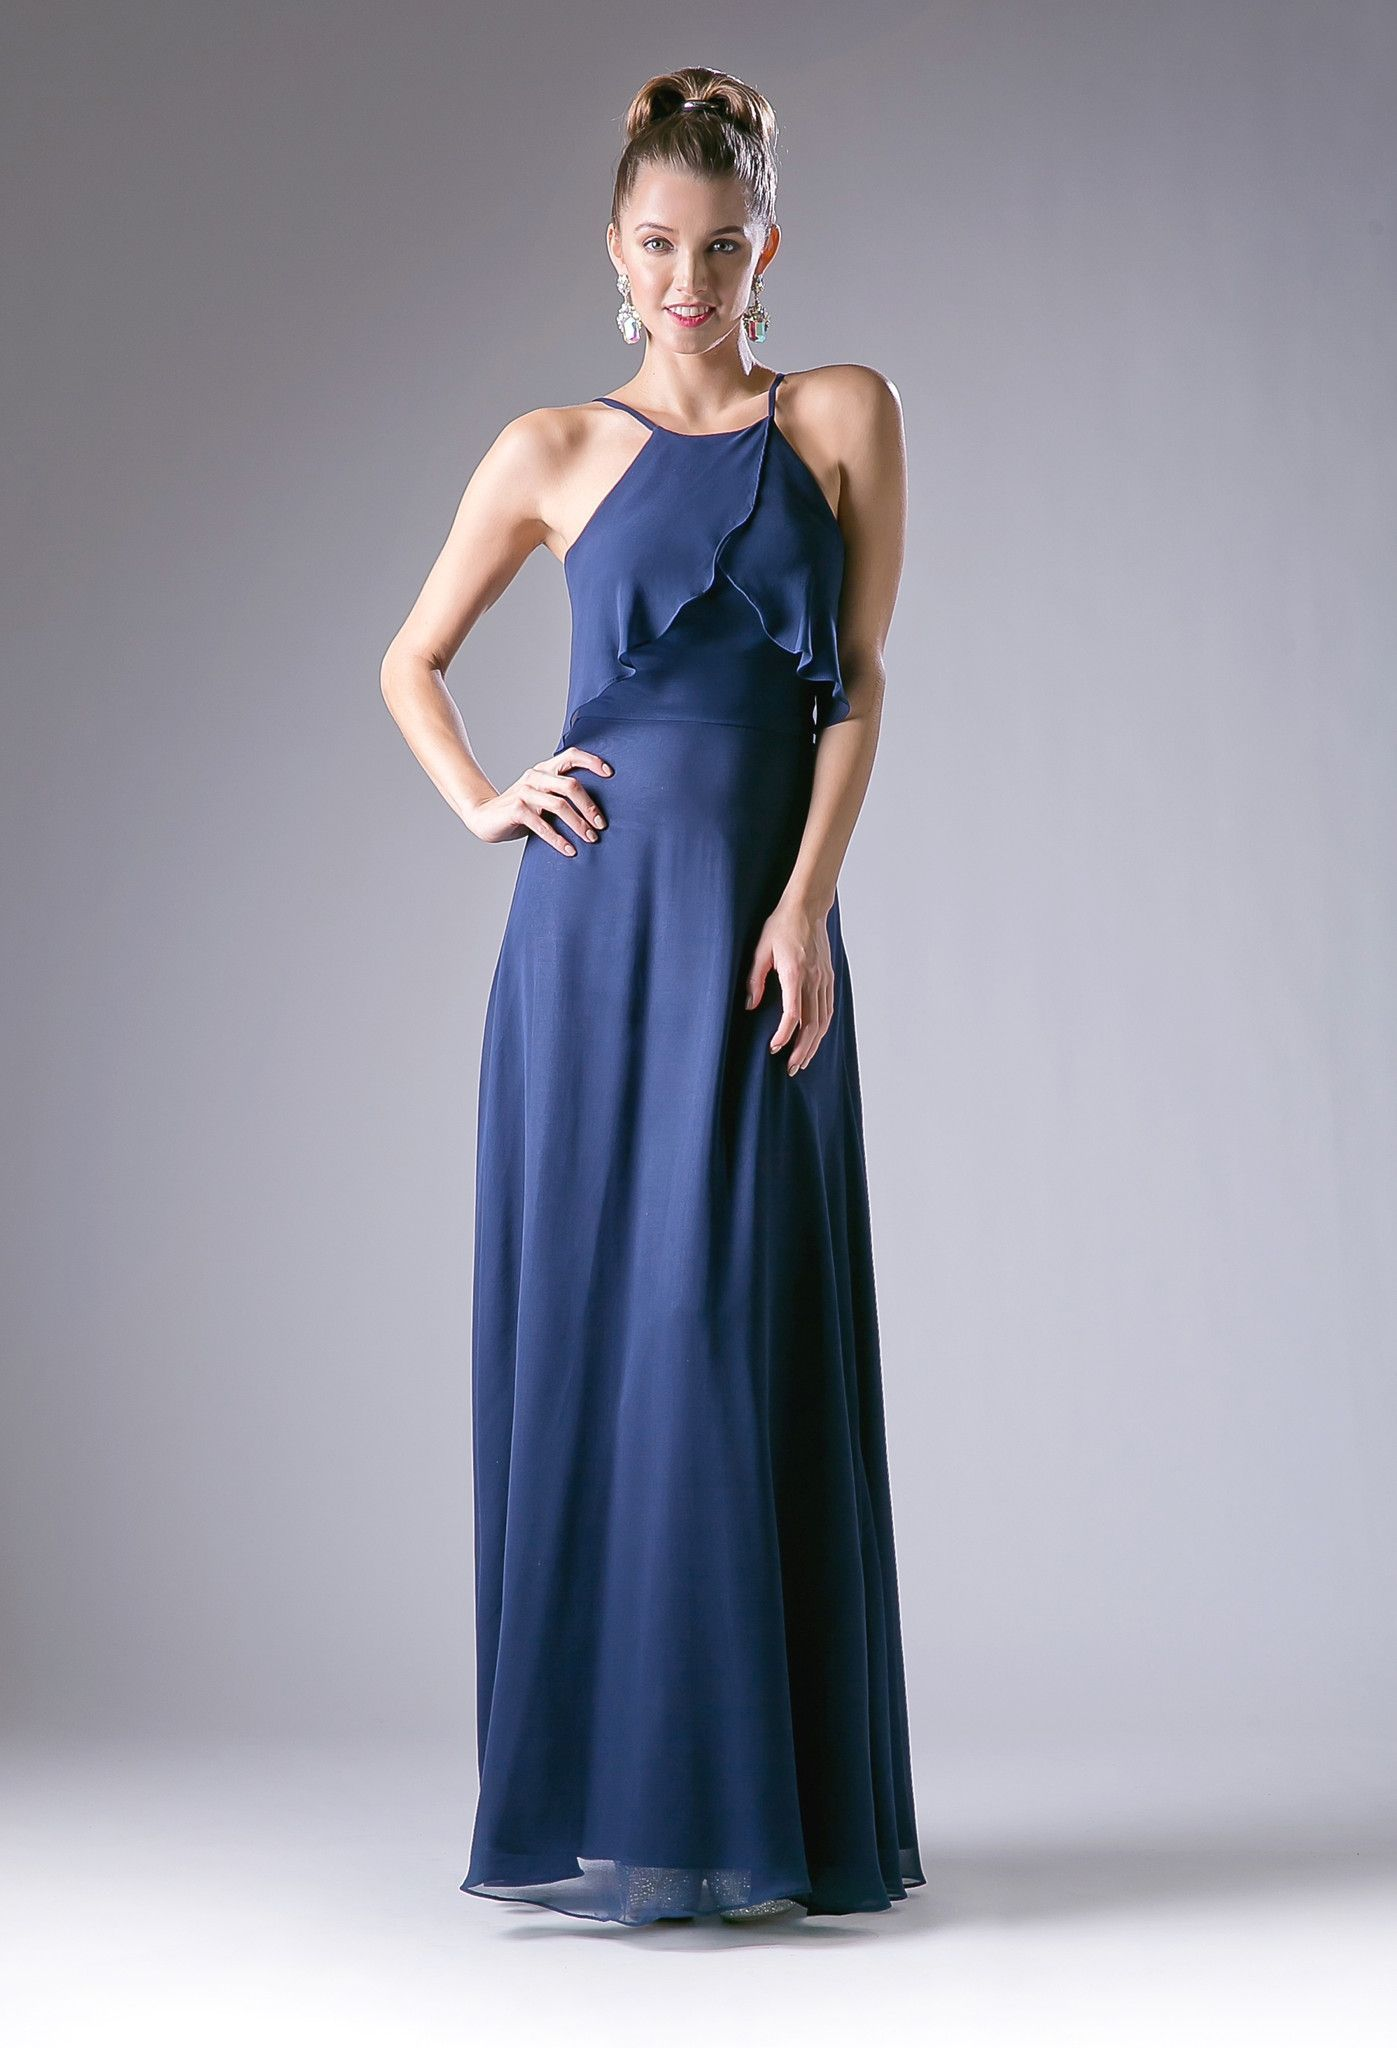 Flounce evening dress with spaghetti straps by cinderella divine